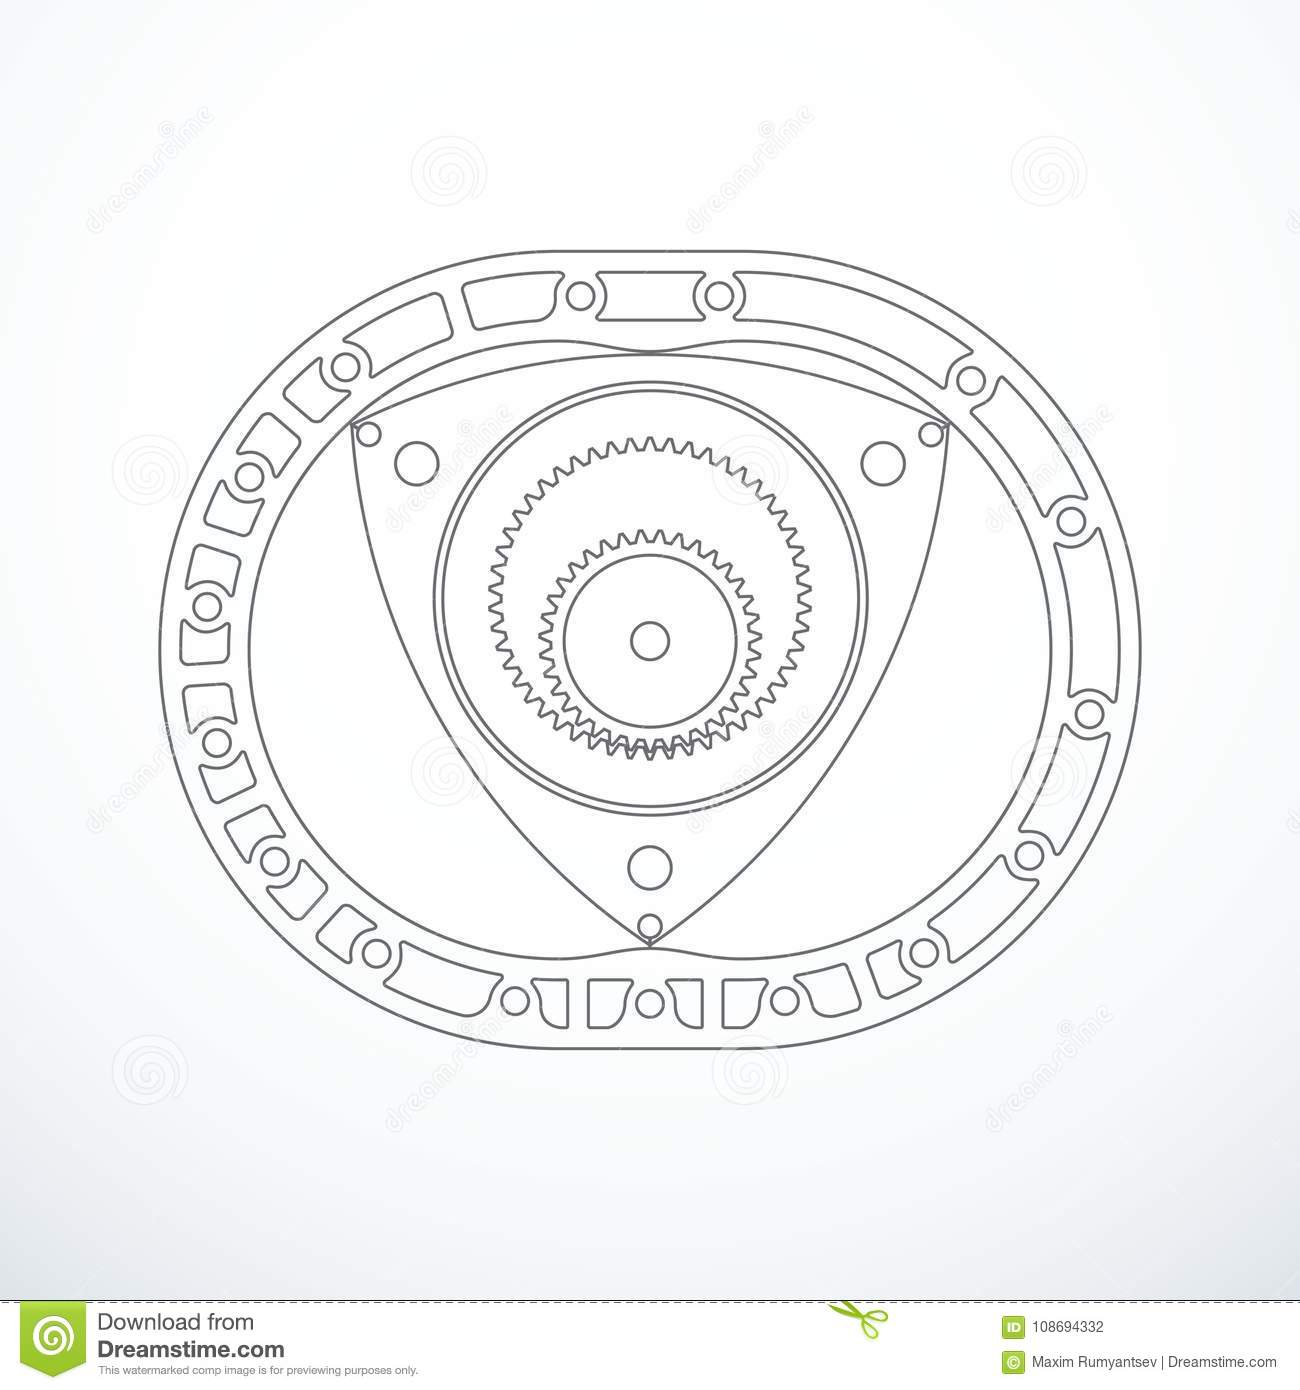 Rotary Wankel Engine Vector Illustration Stock Vector